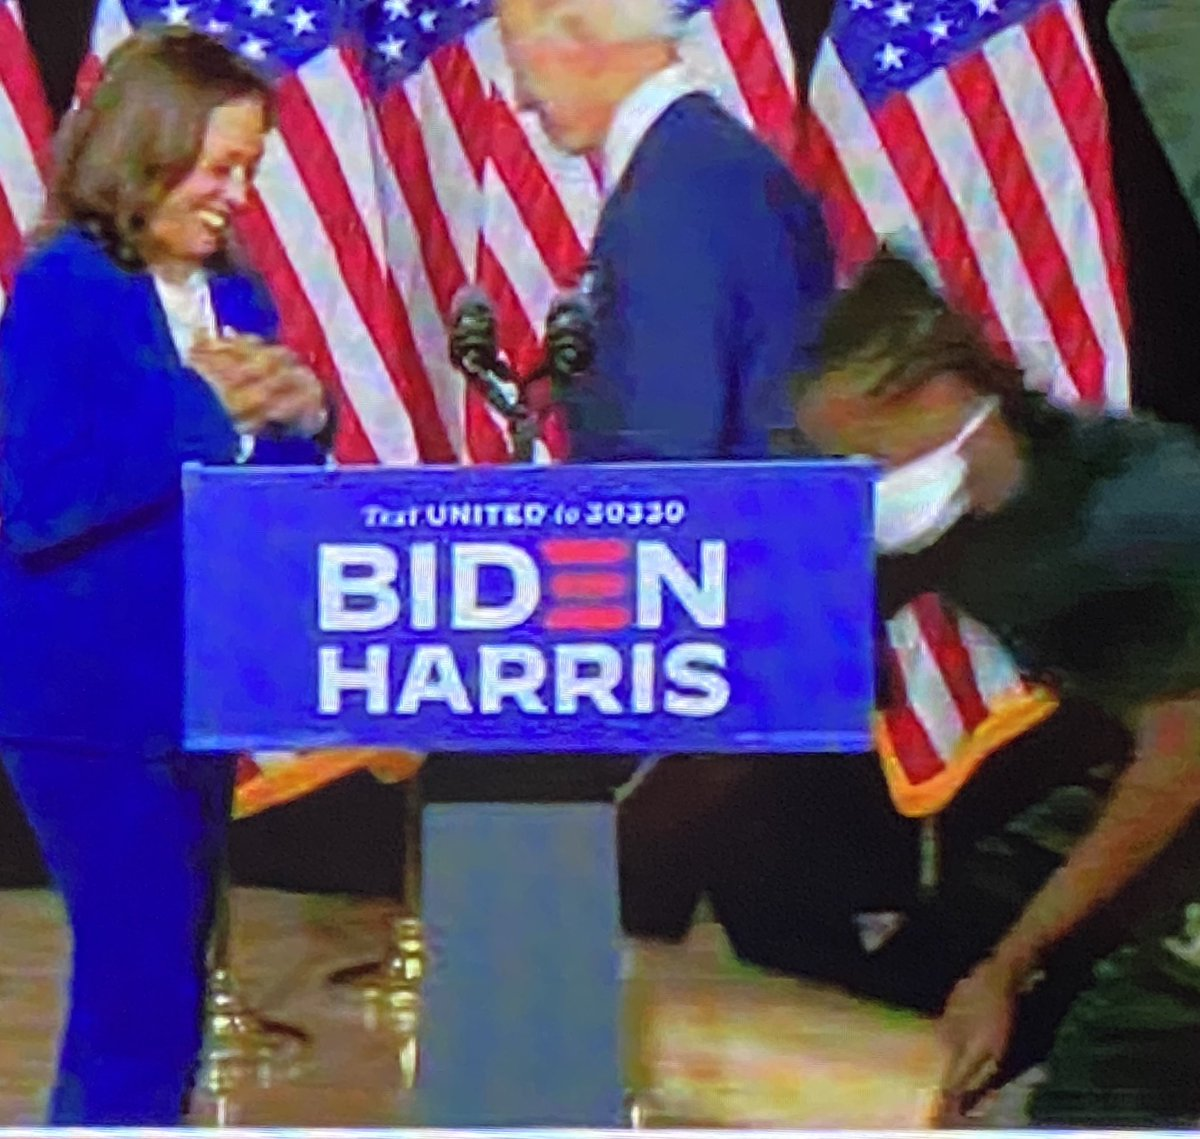 Stage hand brings Harris a box to stand on to give her acceptance speech. Hilarious😂 #Trump #maga #gop #potus #dems #seanhannity #tuckercarlsontonight #ingrahamangle #realDonaldTrump #Trump2020 #wattersworld